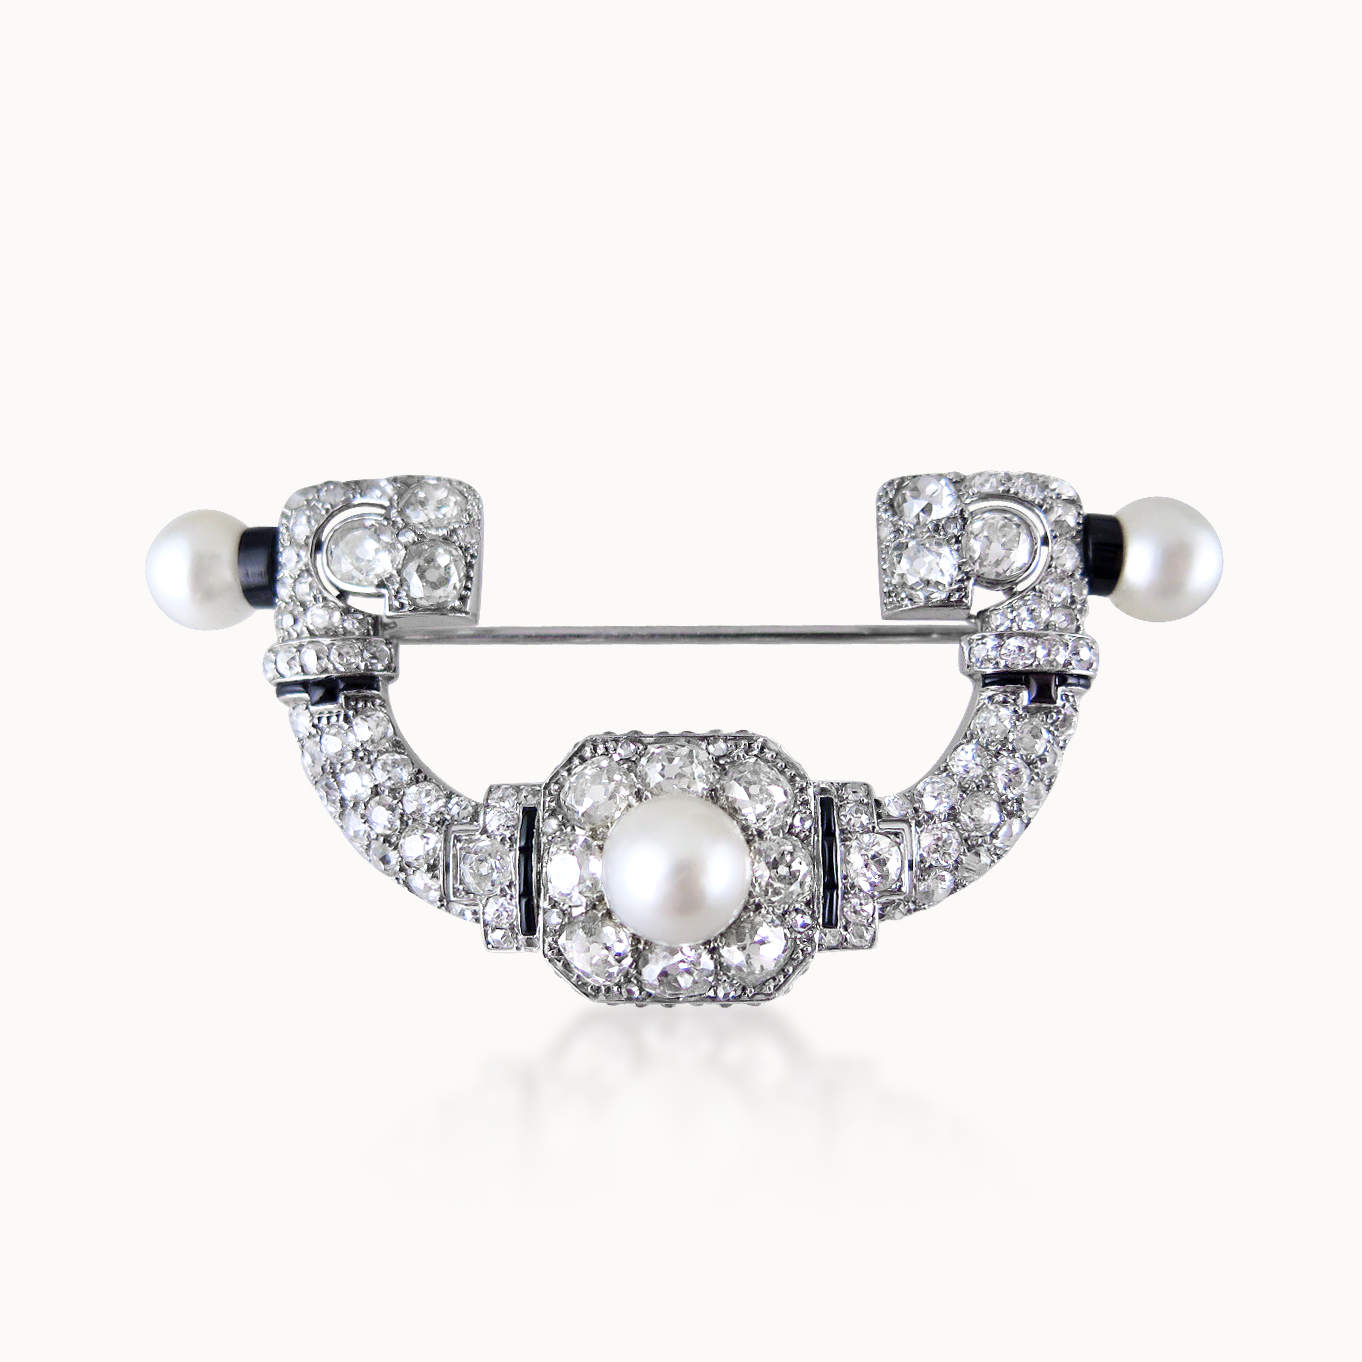 DIAMOND, PEARL AND ONYX BROOCH BY CARTIER PARIS